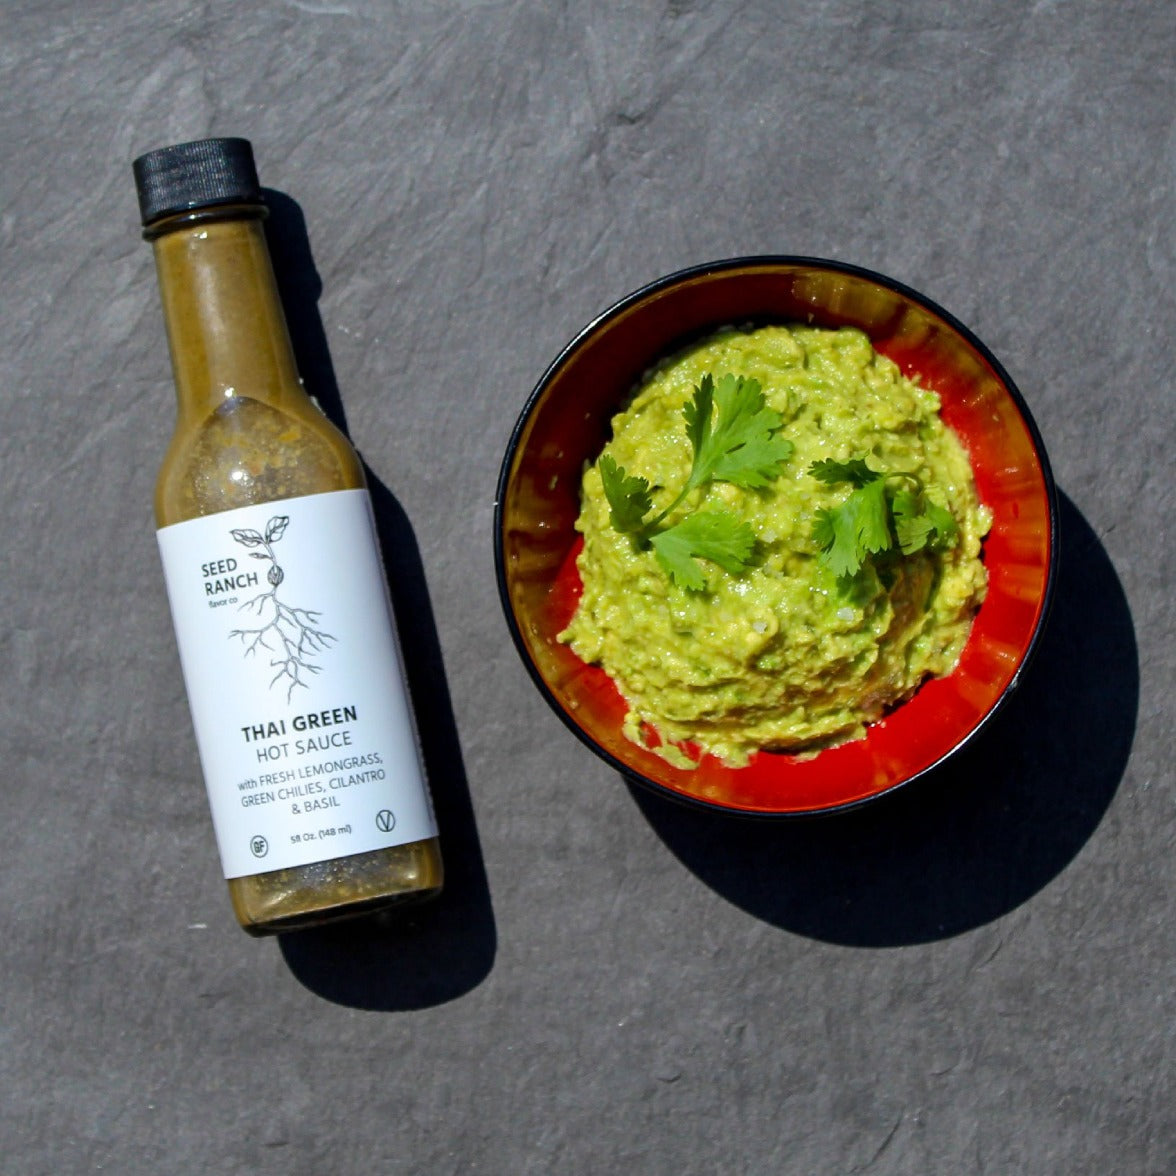 Thai green hot sauce mixed with guacamole